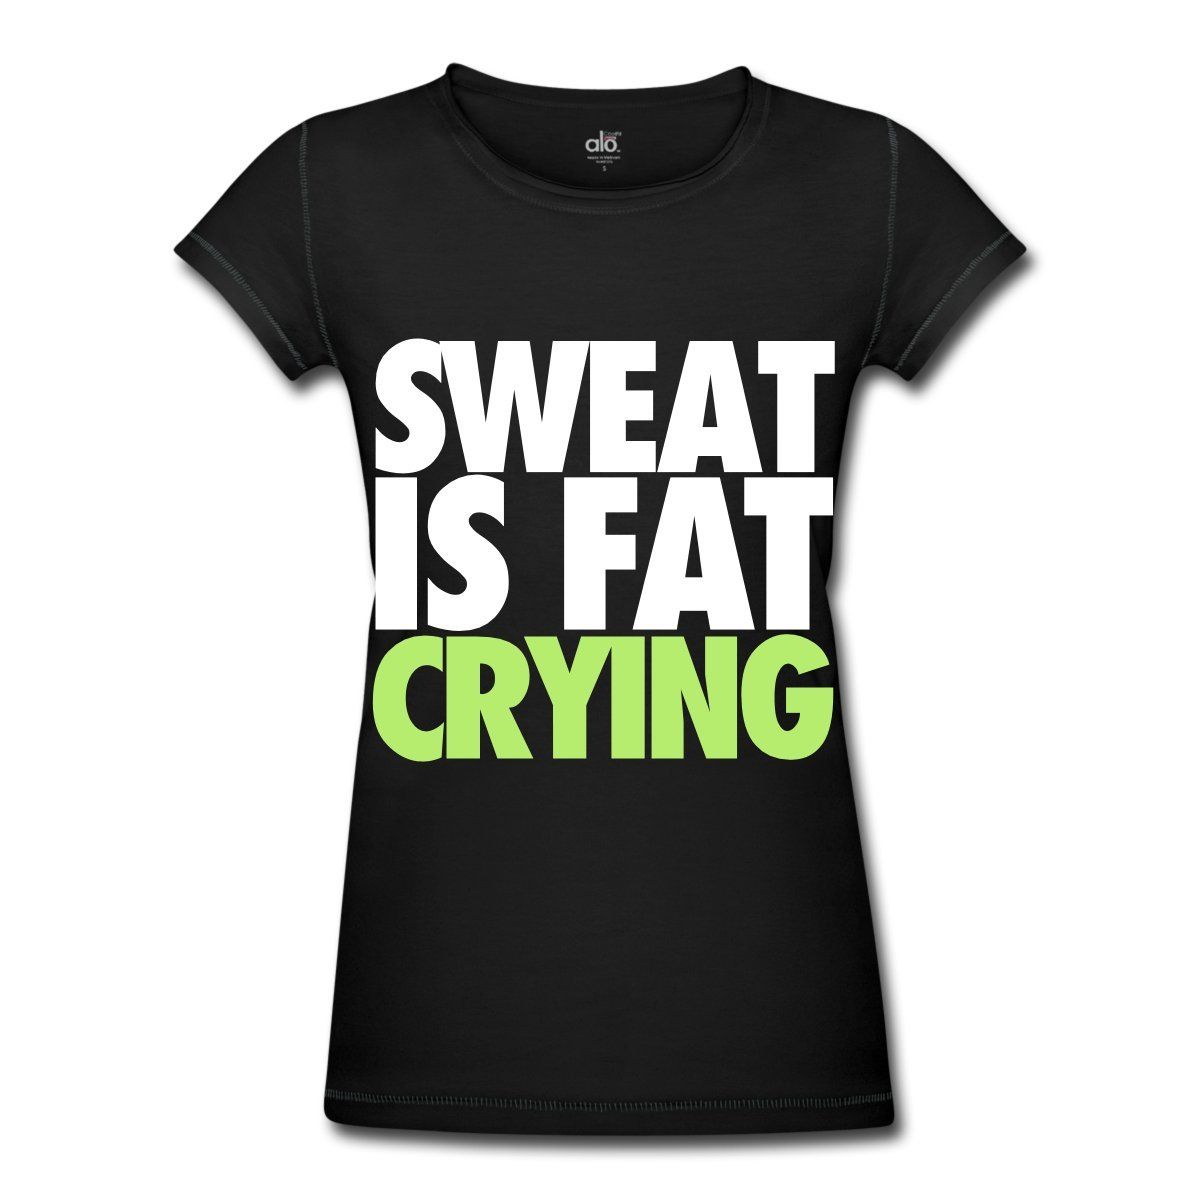 SWEAT IS FAT CRYING, Women's Bamboo Performance T-Shirt by ALO at Amazon.com